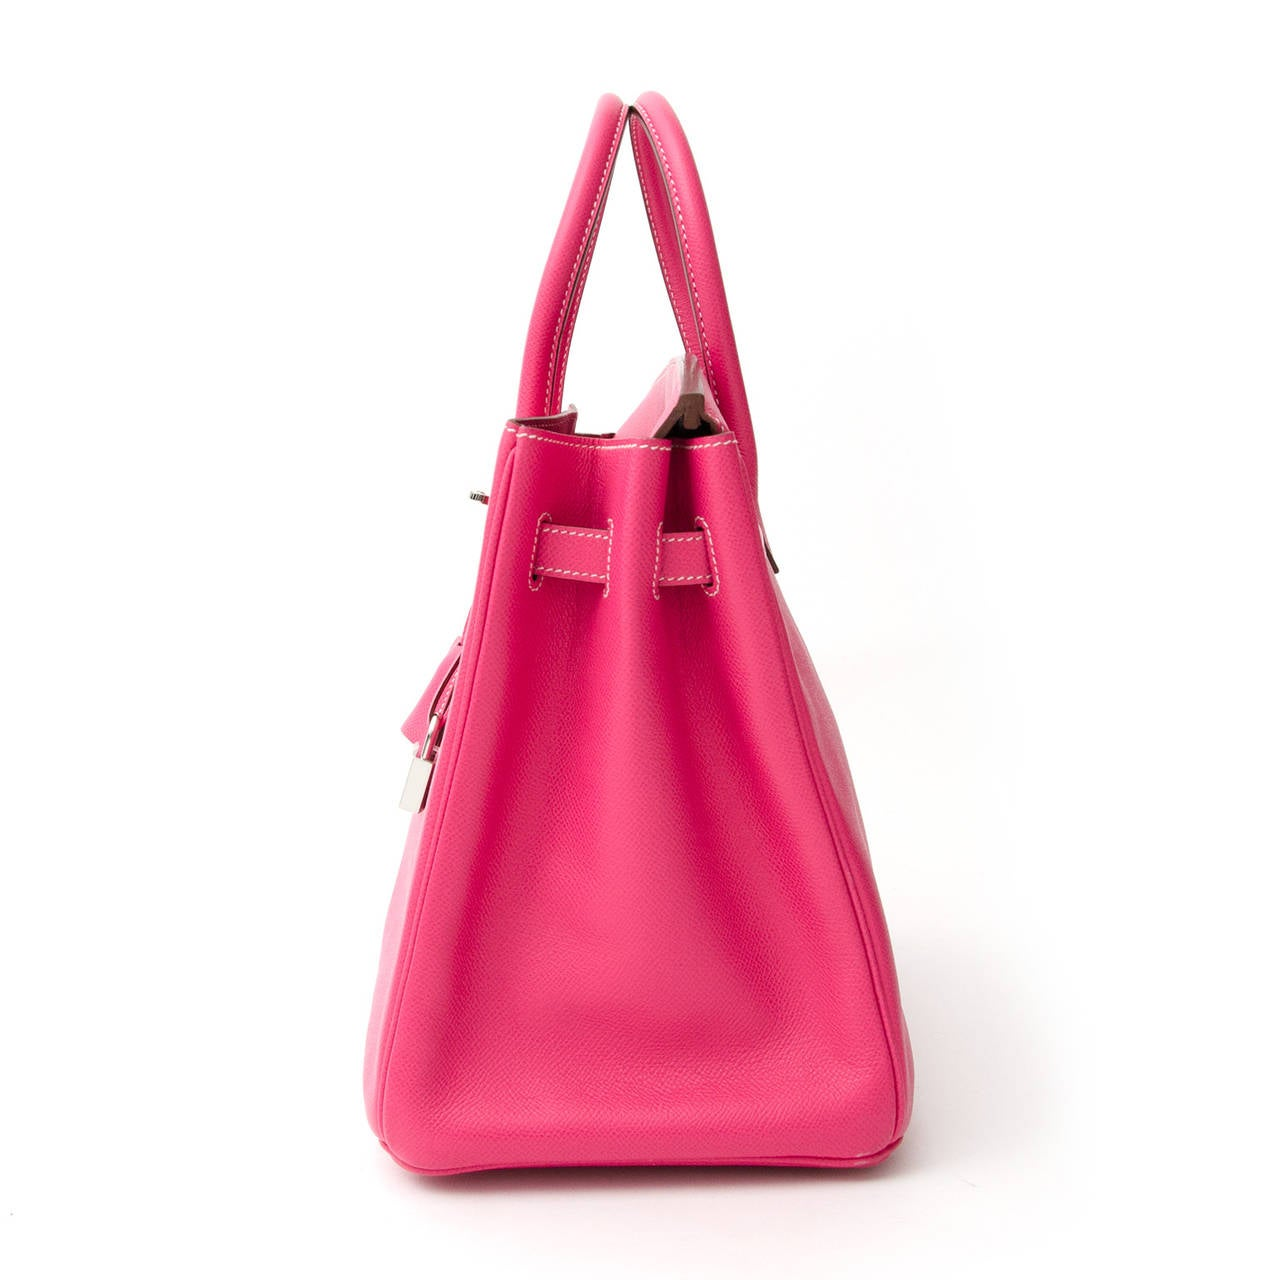 1a0b85648b16 ... Veau Epsom Rose Tyrien + receipt For Sale. From the Hermès CANDY  COLLECTION   this Birkin bag measures 35 cm. It is made